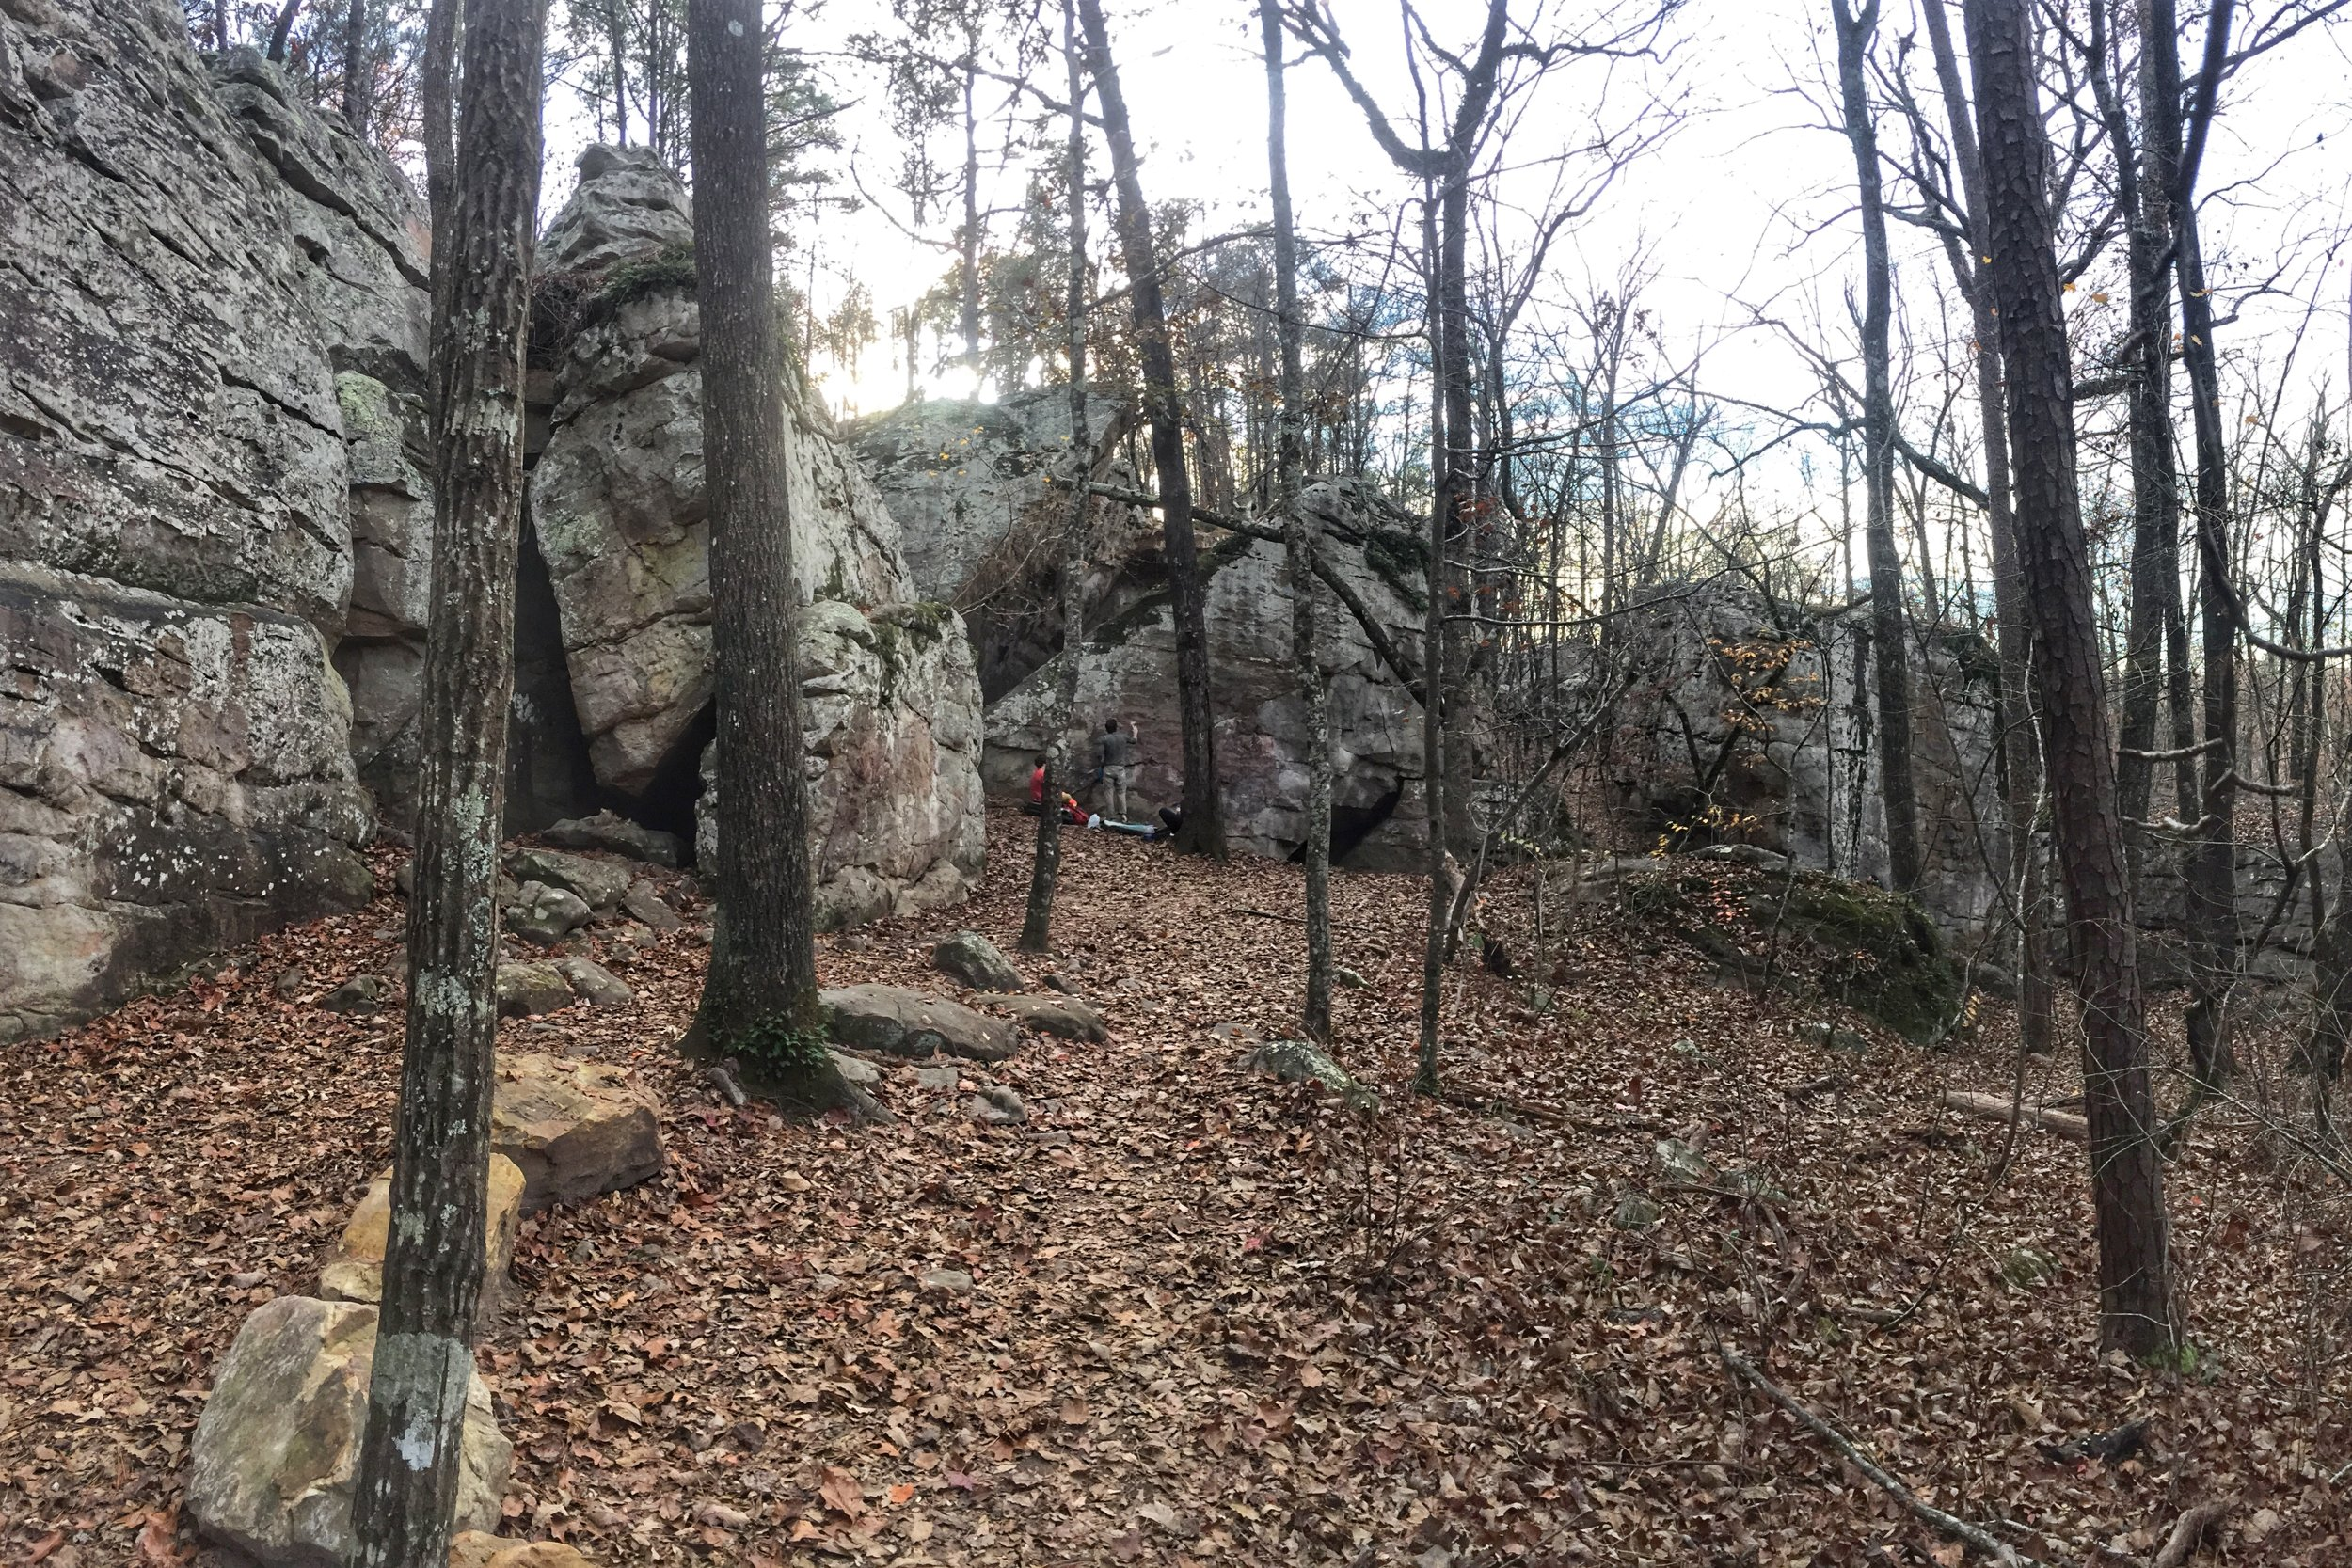 A perfect balance of nature and community, Moss Rock Preserve is a beautiful 349 acre nature preserve abundant with forest systems, rock outcroppings, streams, waterfalls, wildlife, and other unique natural features. Currently, Moss Rock Preserve is home to four rare species of plants and a rare variant of Little River Canyon Sandstone Glade that is thought to be one of only 35 occurrences known around the world!